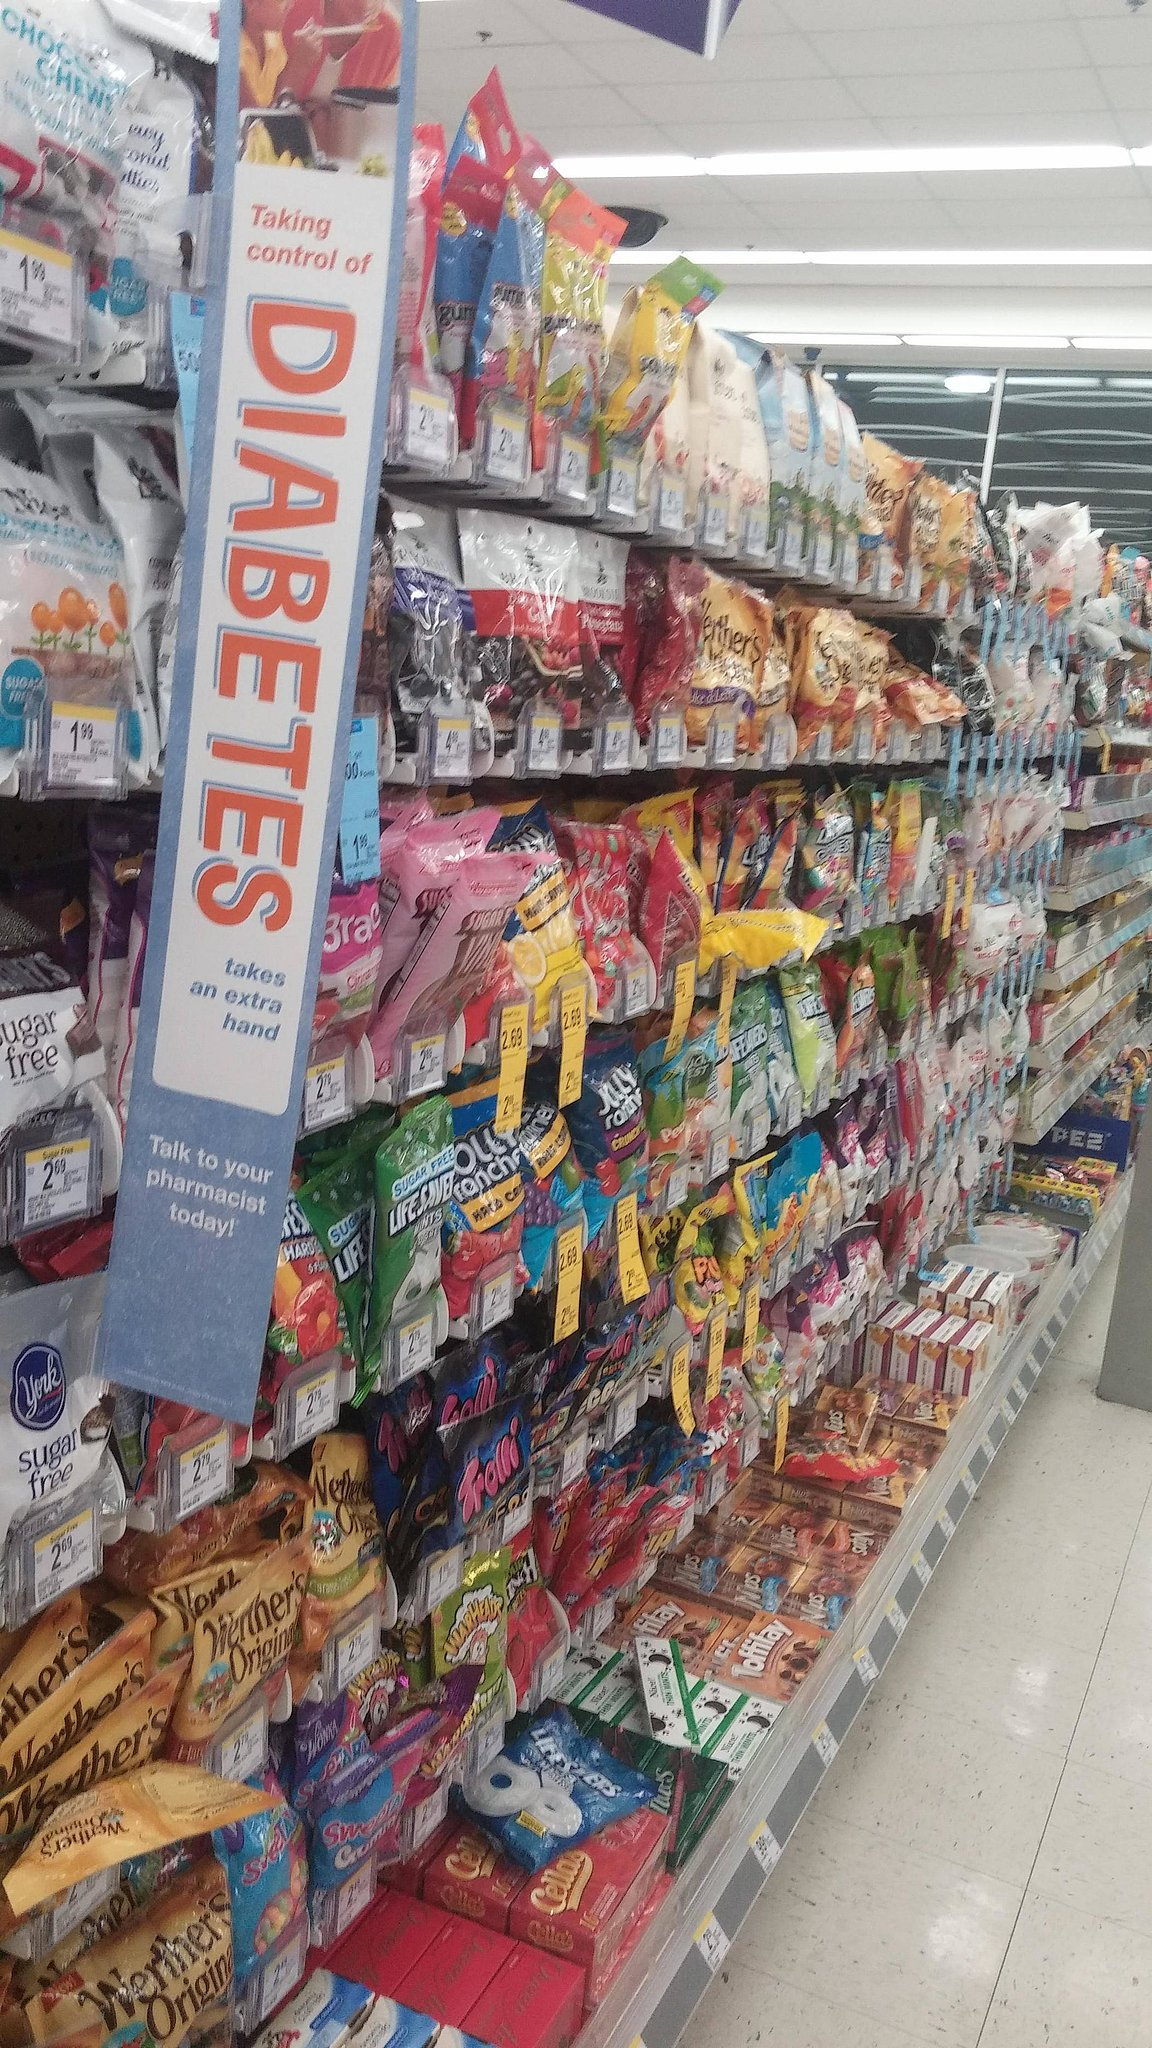 """""""I've always called it the candy aisle, but this works too . . ."""" Source: Reddit user zqillini4 via Imgur"""